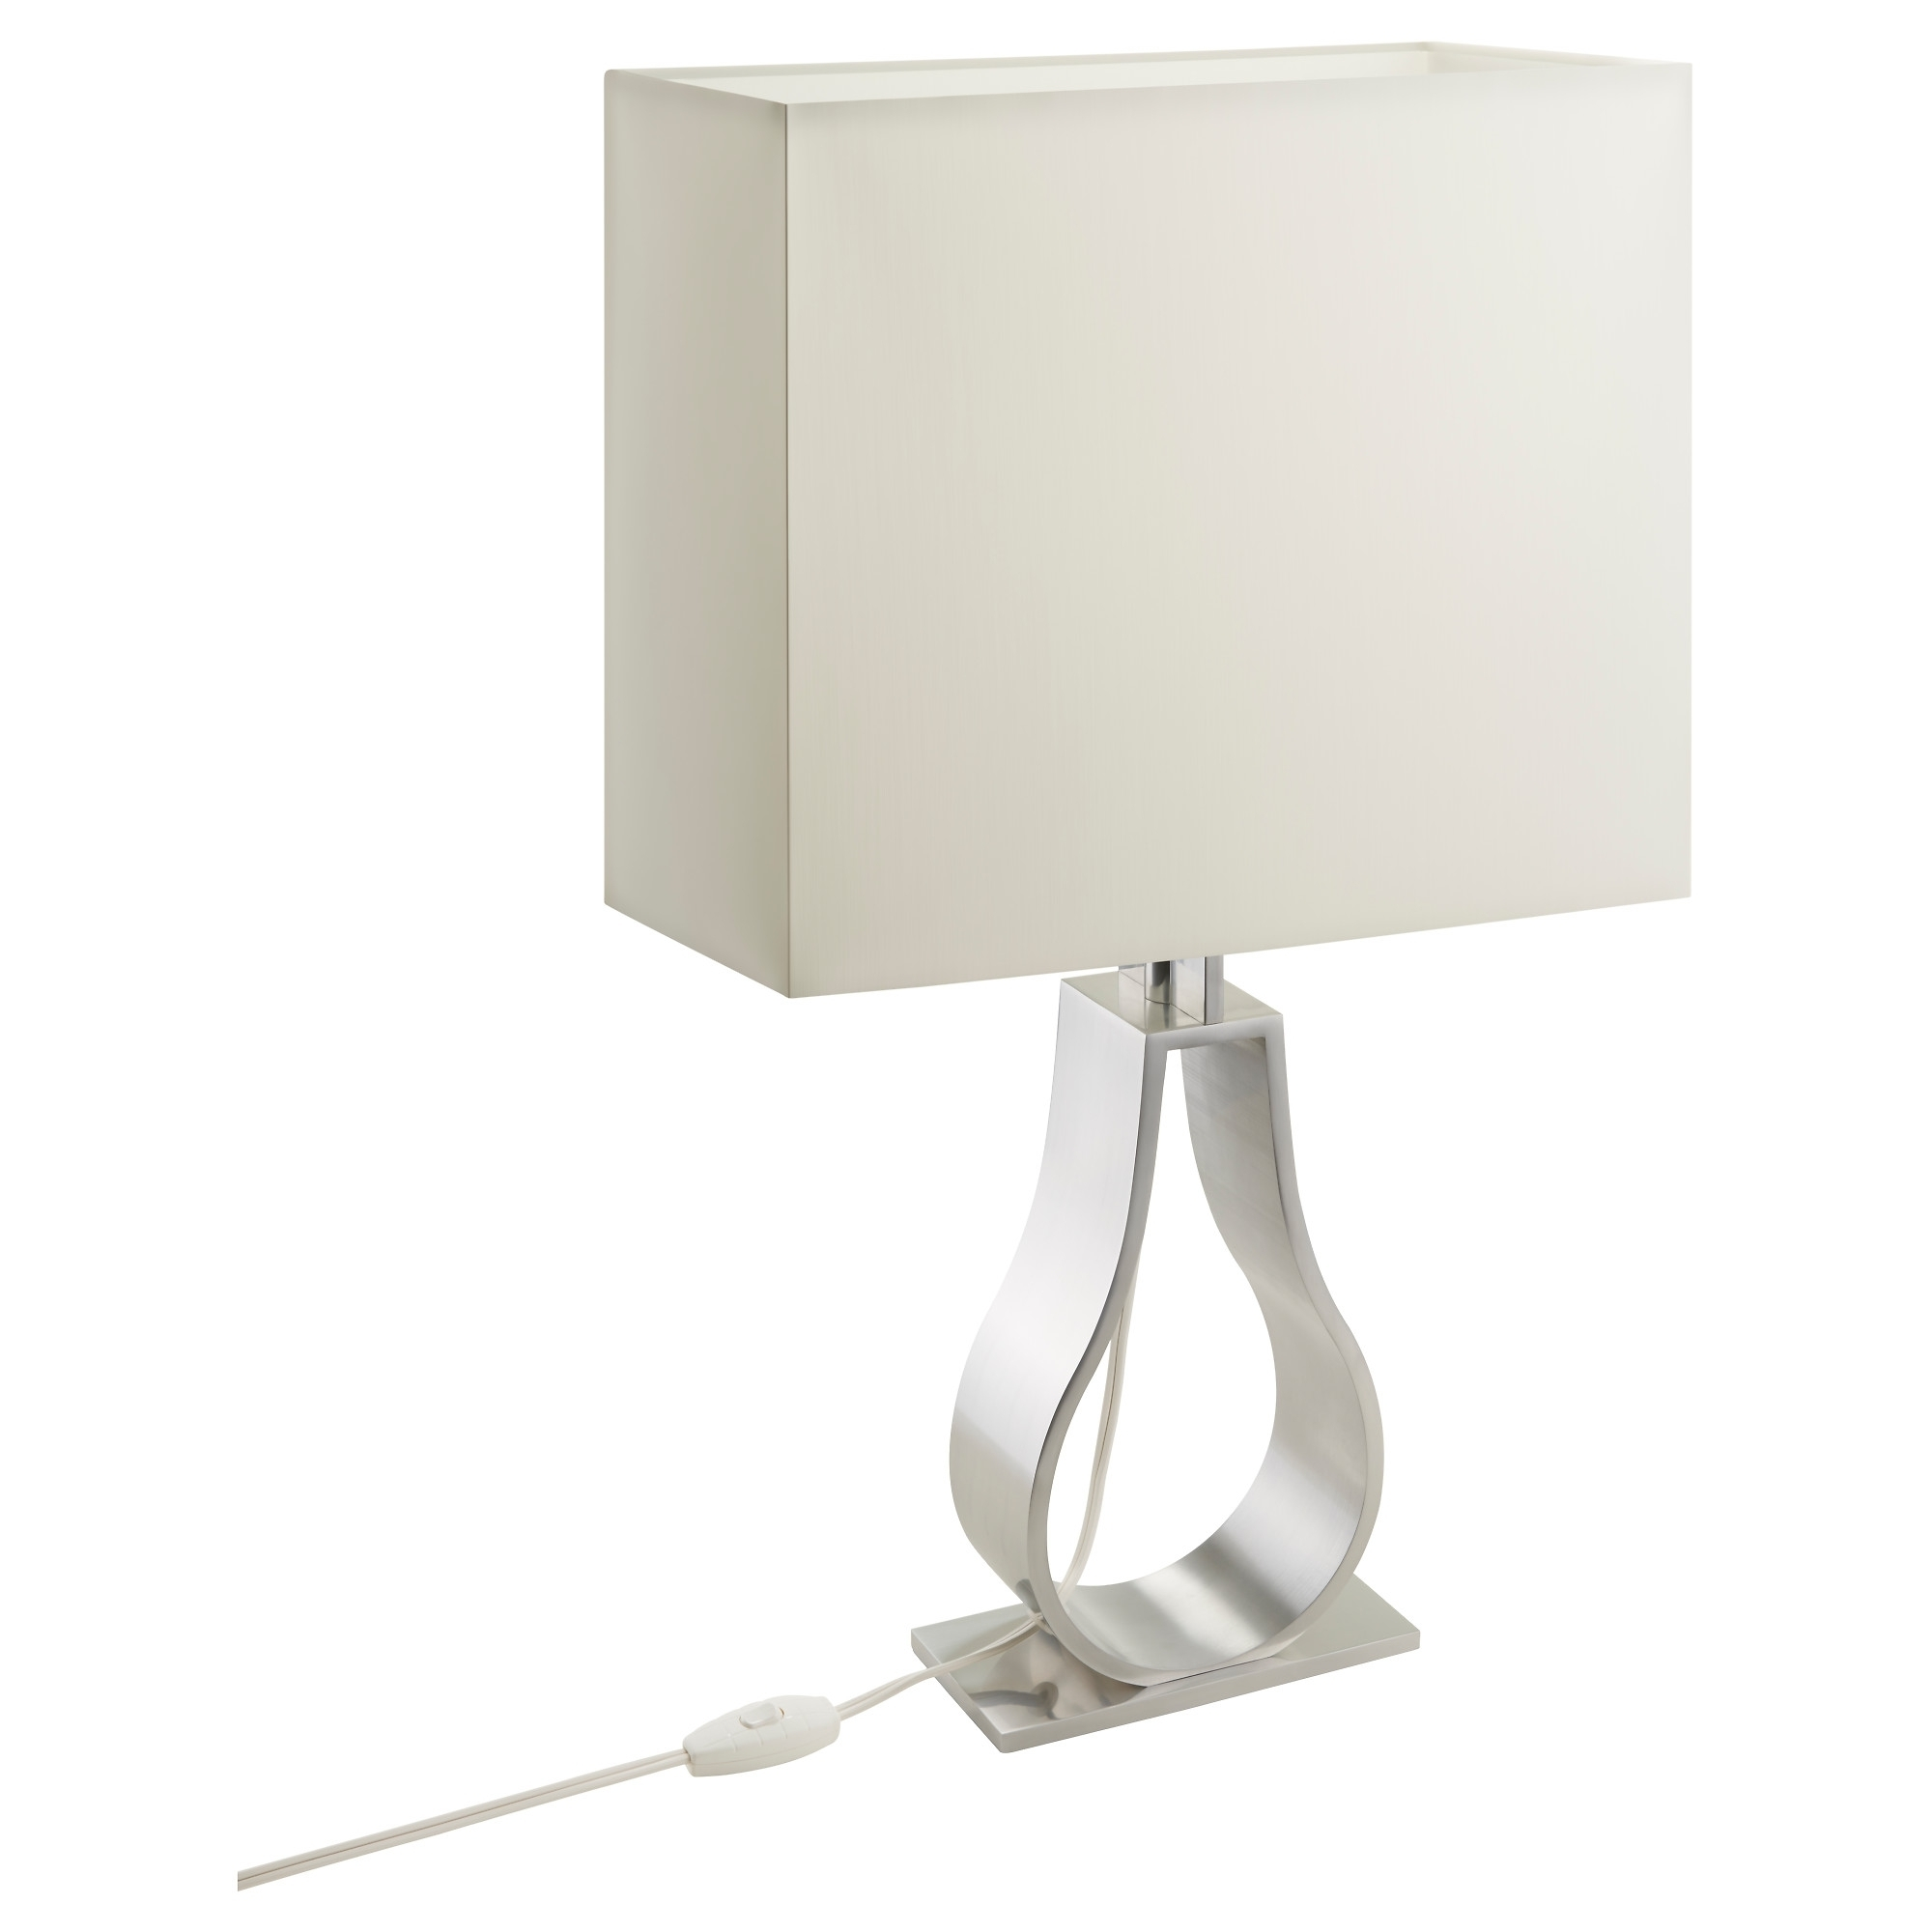 Gold Living Room Table Lamps Regarding Most Up To Date Top 66 Preeminent White Lights For Bedroom And Gold Table Lamp (View 7 of 20)